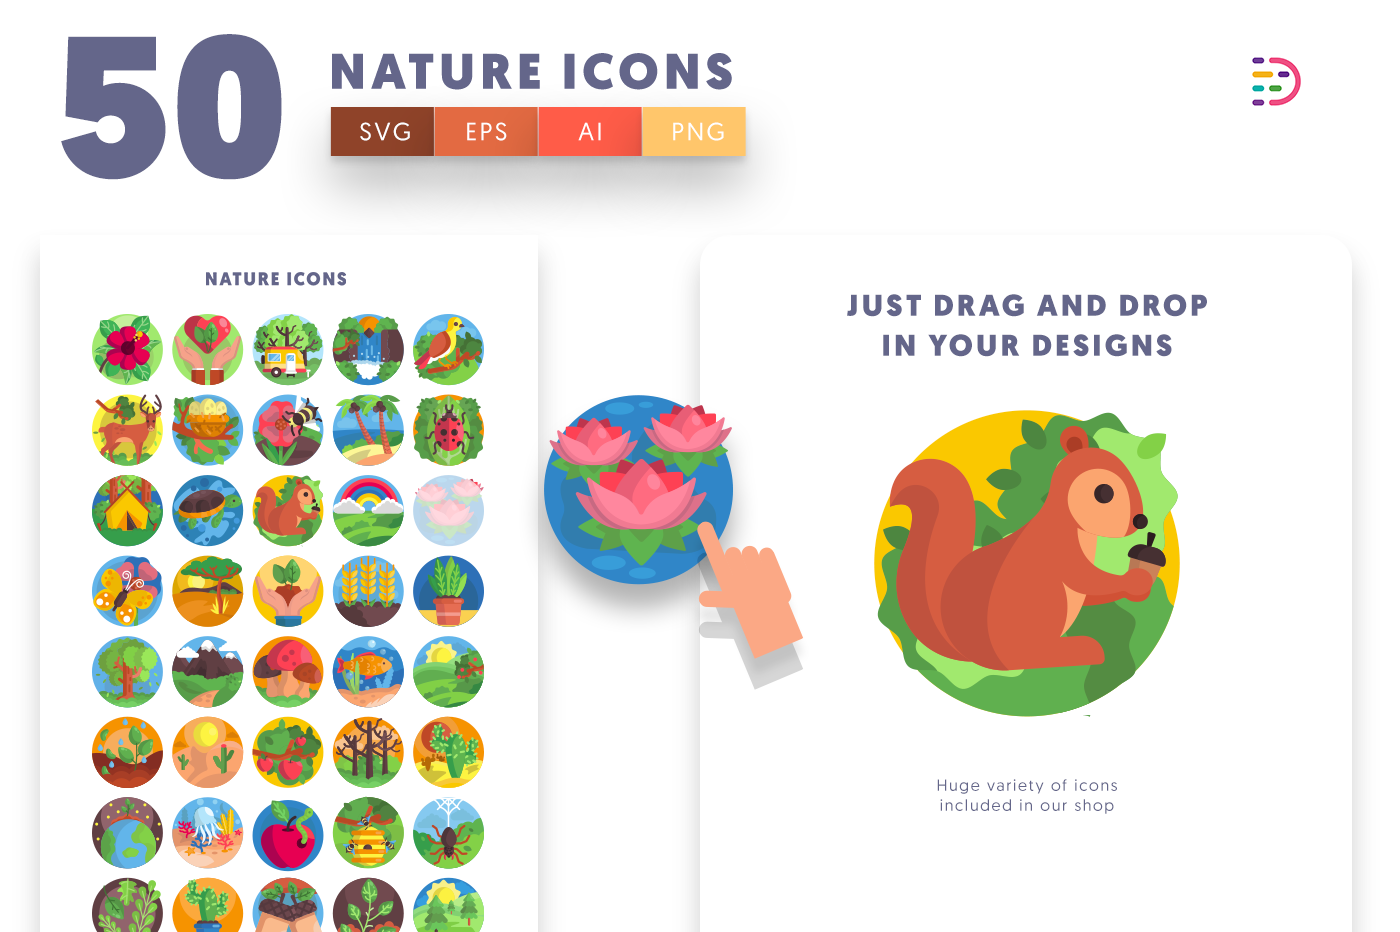 Drag and drop vector 50 Nature Icons